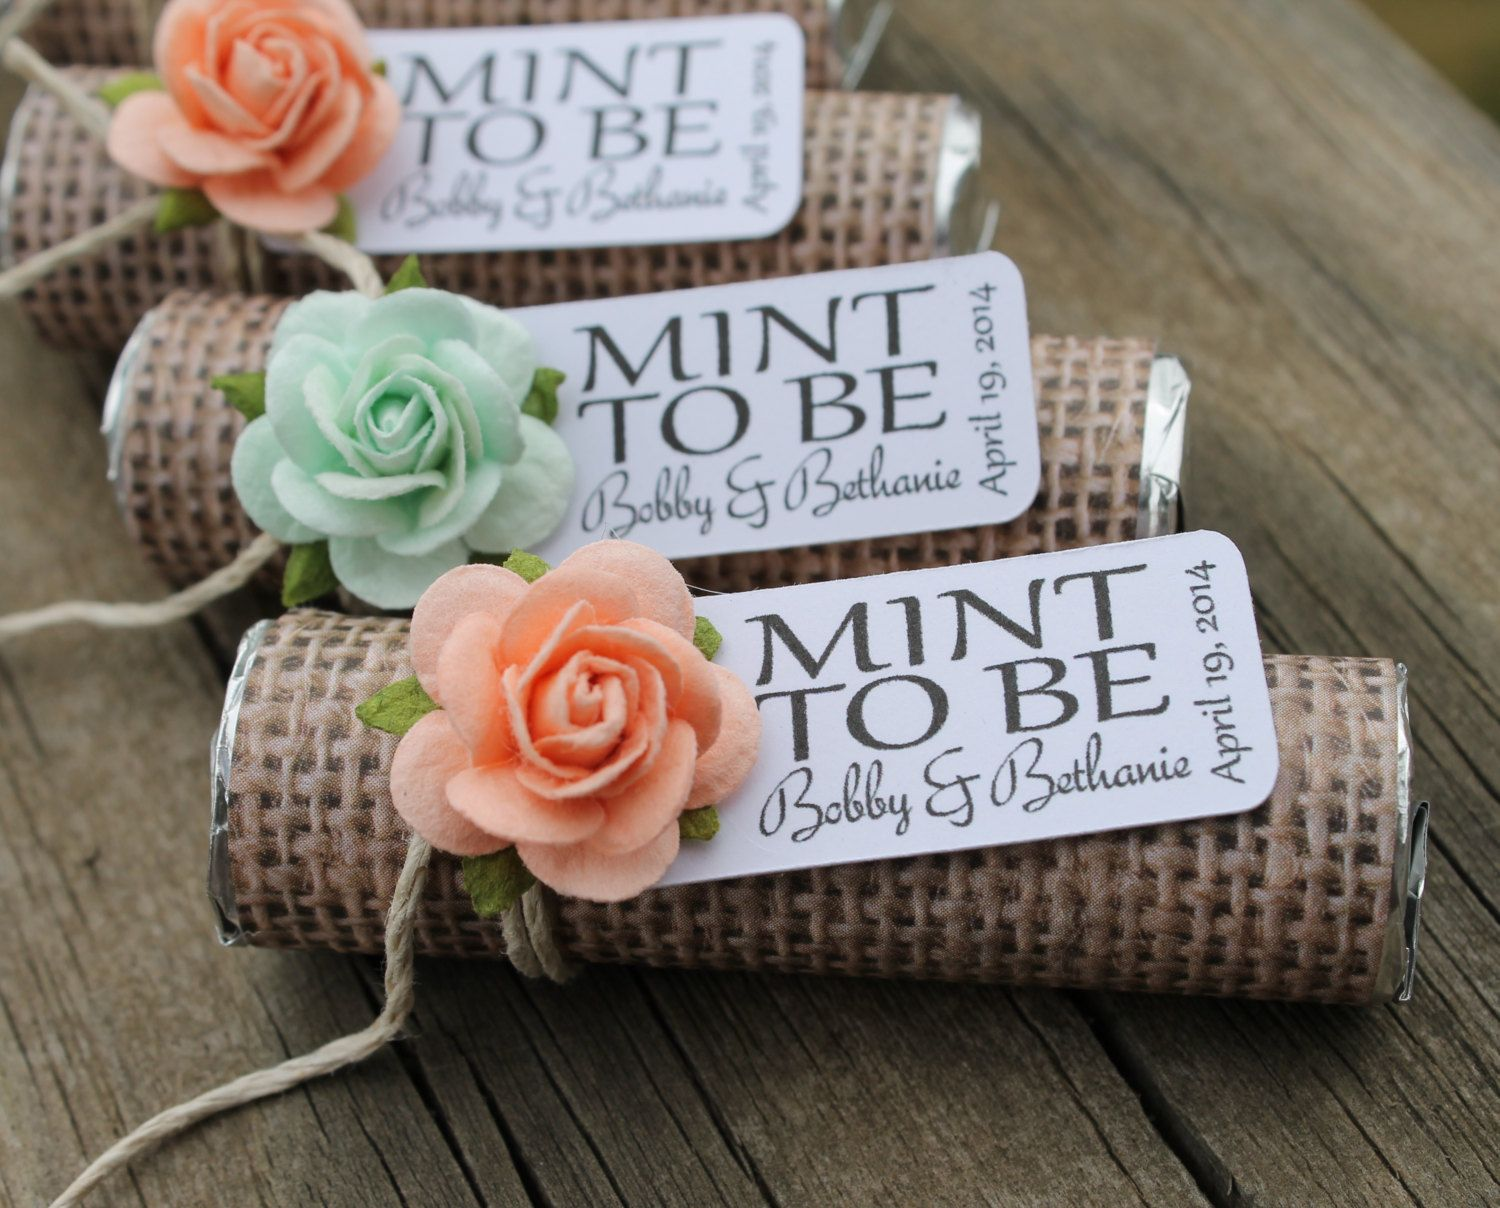 Mint And Peach Rustic Burlap Wedding Favors This Listing Is For 24 Personalized MINT TO BE You Will Receive The Completely ASSEMBLED